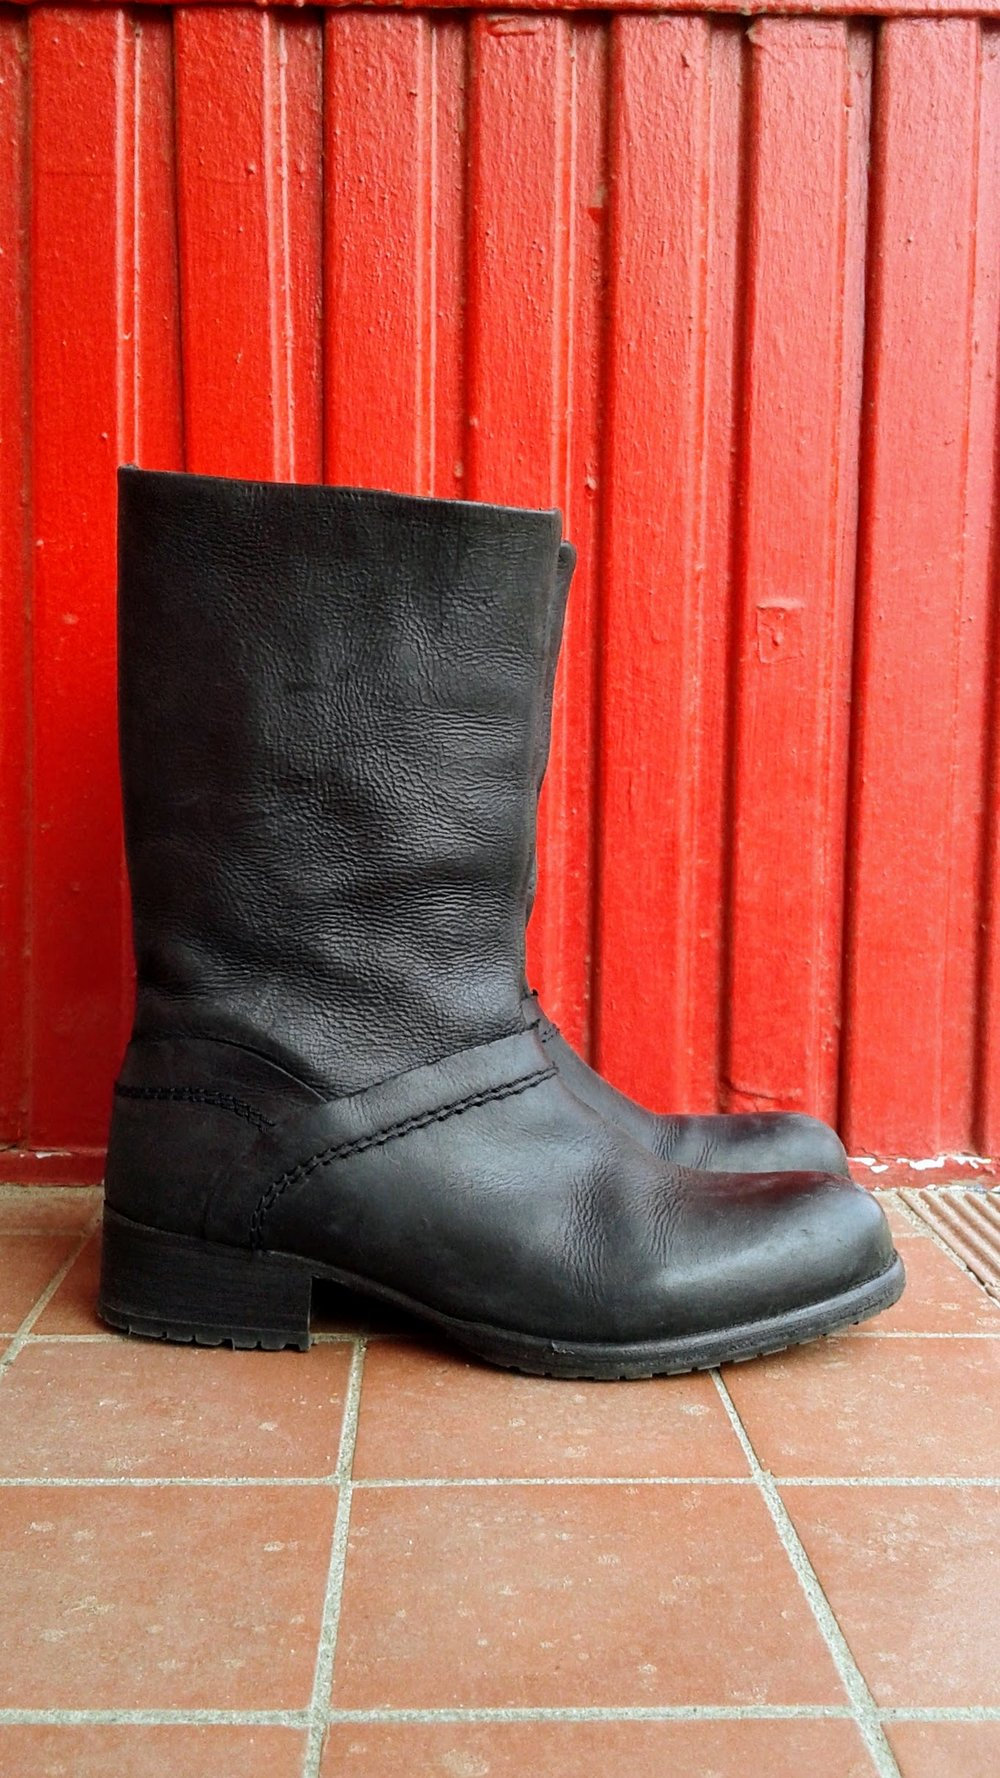 Gravitypope boots; S6, $60